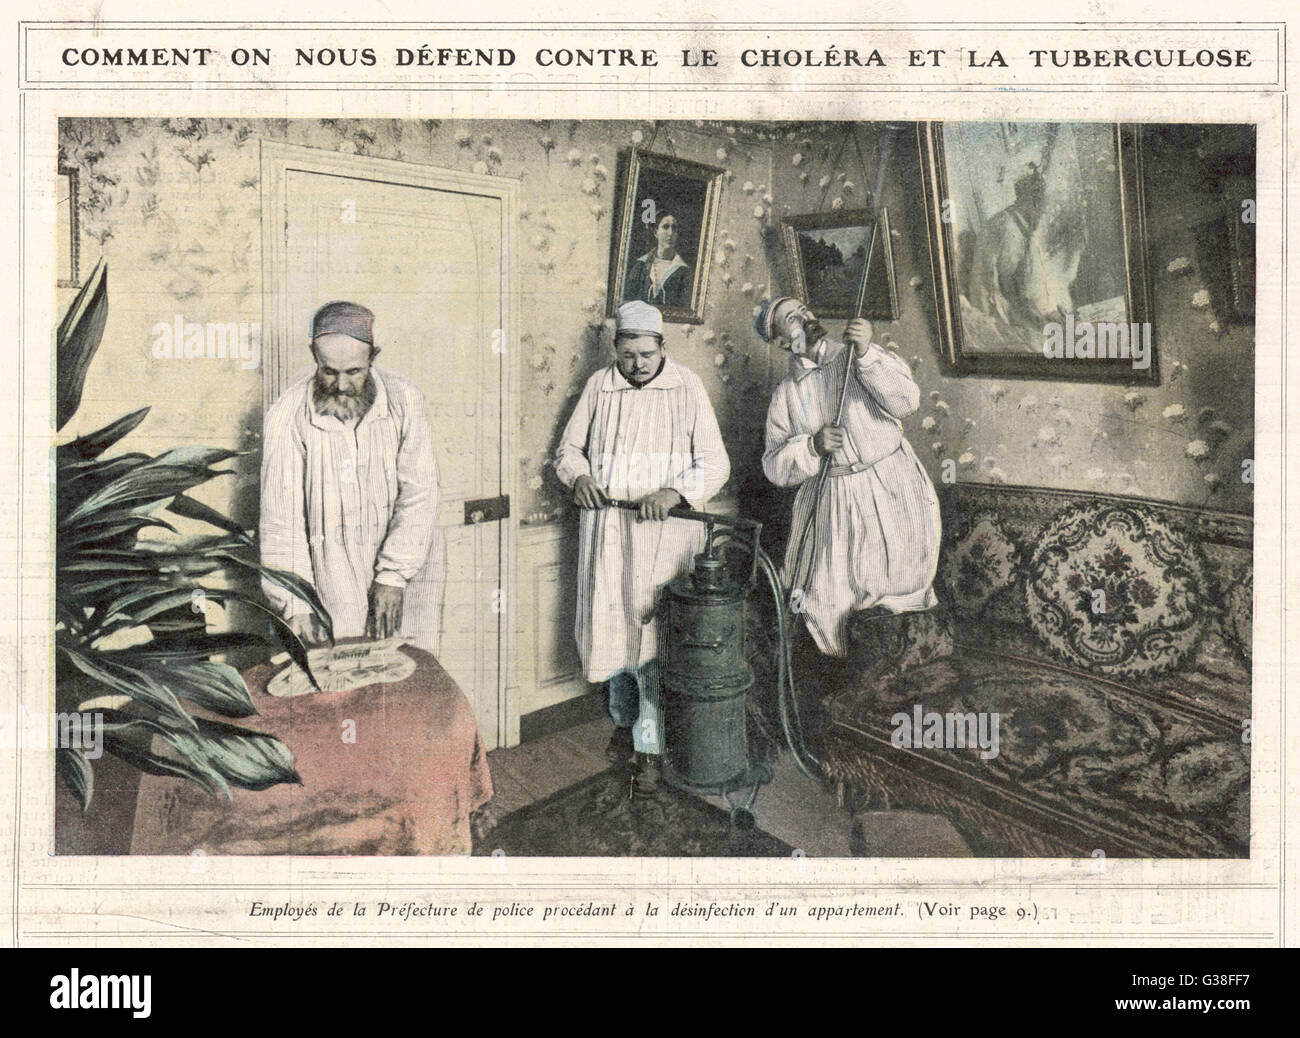 DISINFECTING A HOME Workers for the Paris  prefecture disinfect a home  where tuberculosis or cholera  have occurred - Stock Image